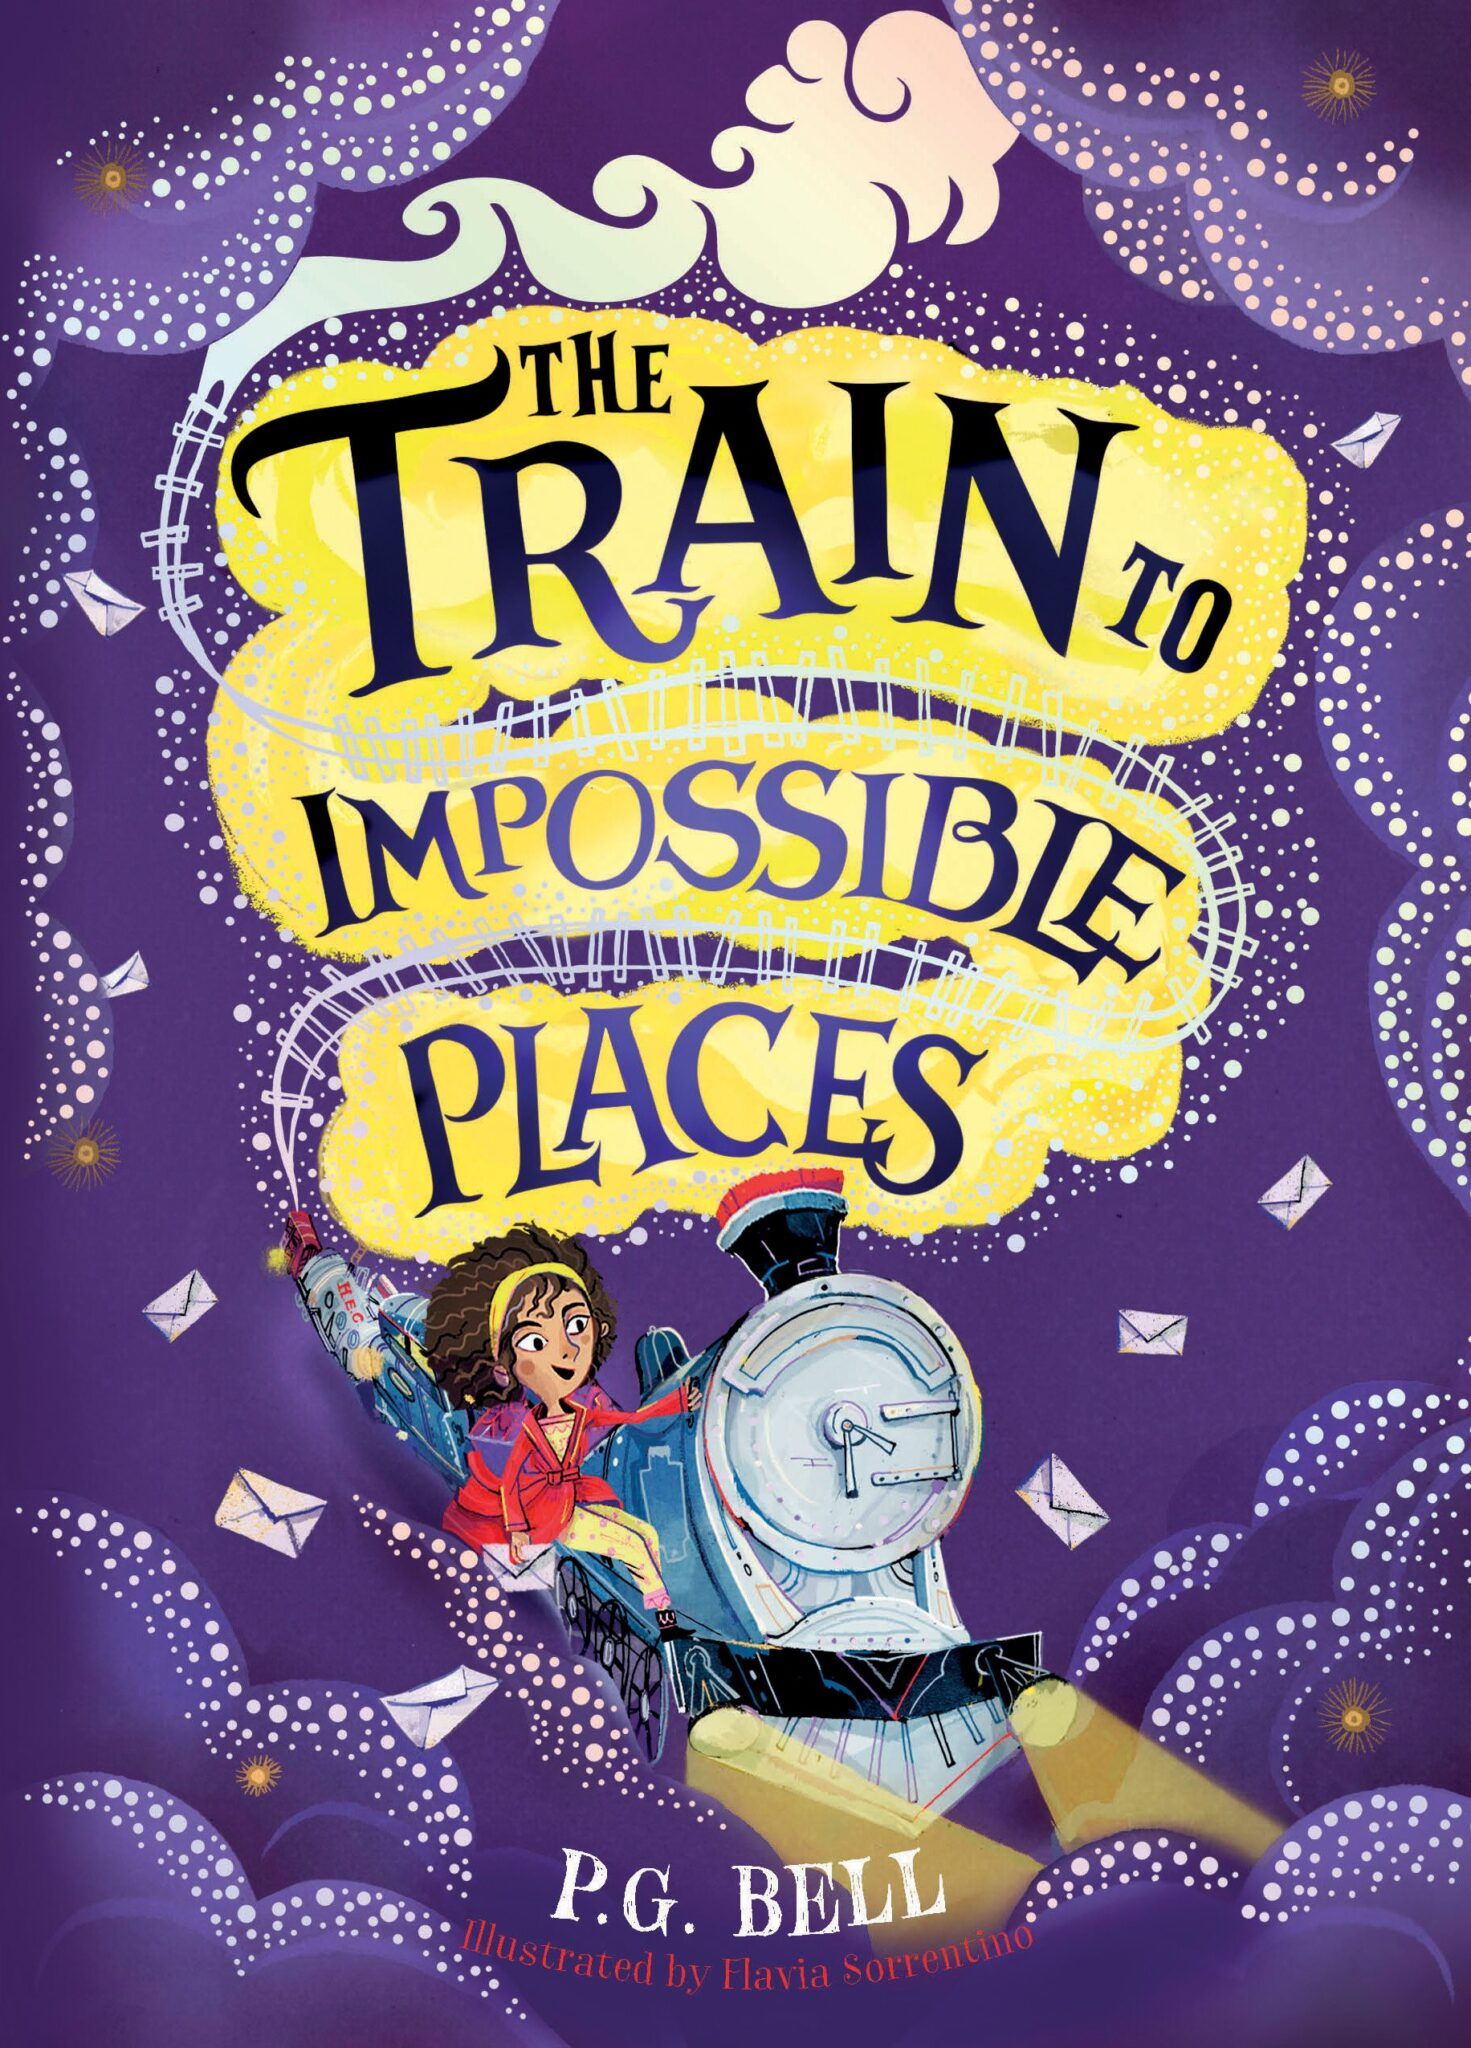 train to impossible places